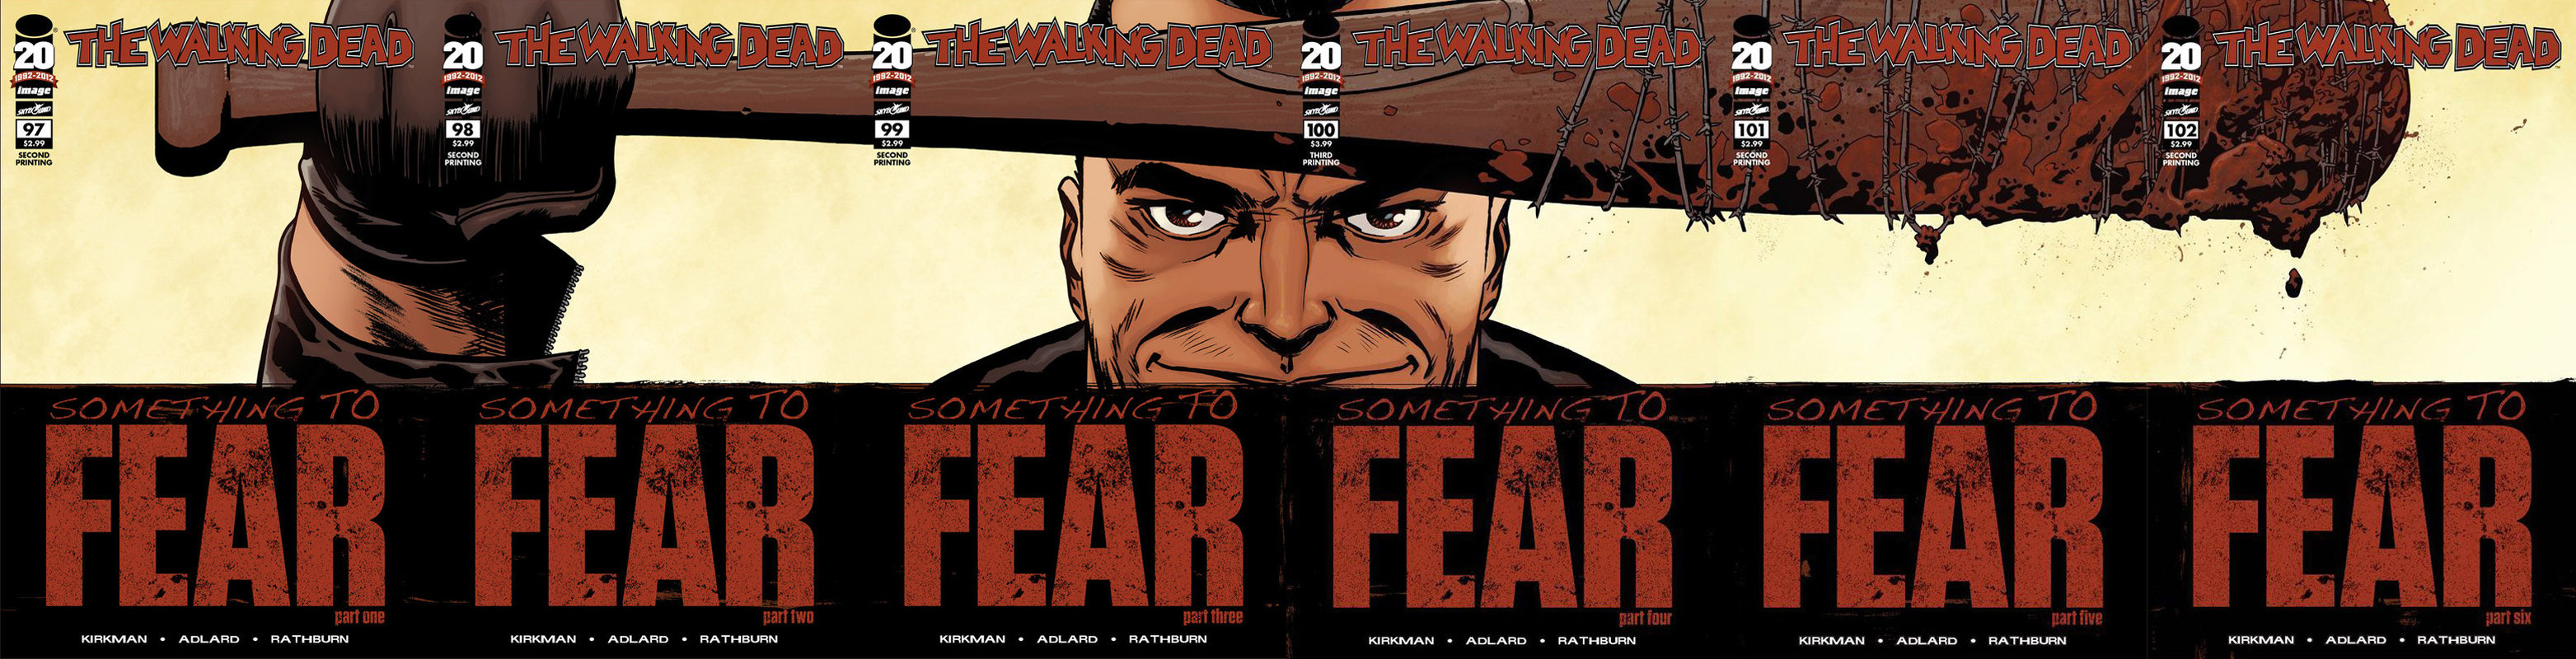 The Walking Dead Walking Dead Something To Fear Covers 566452